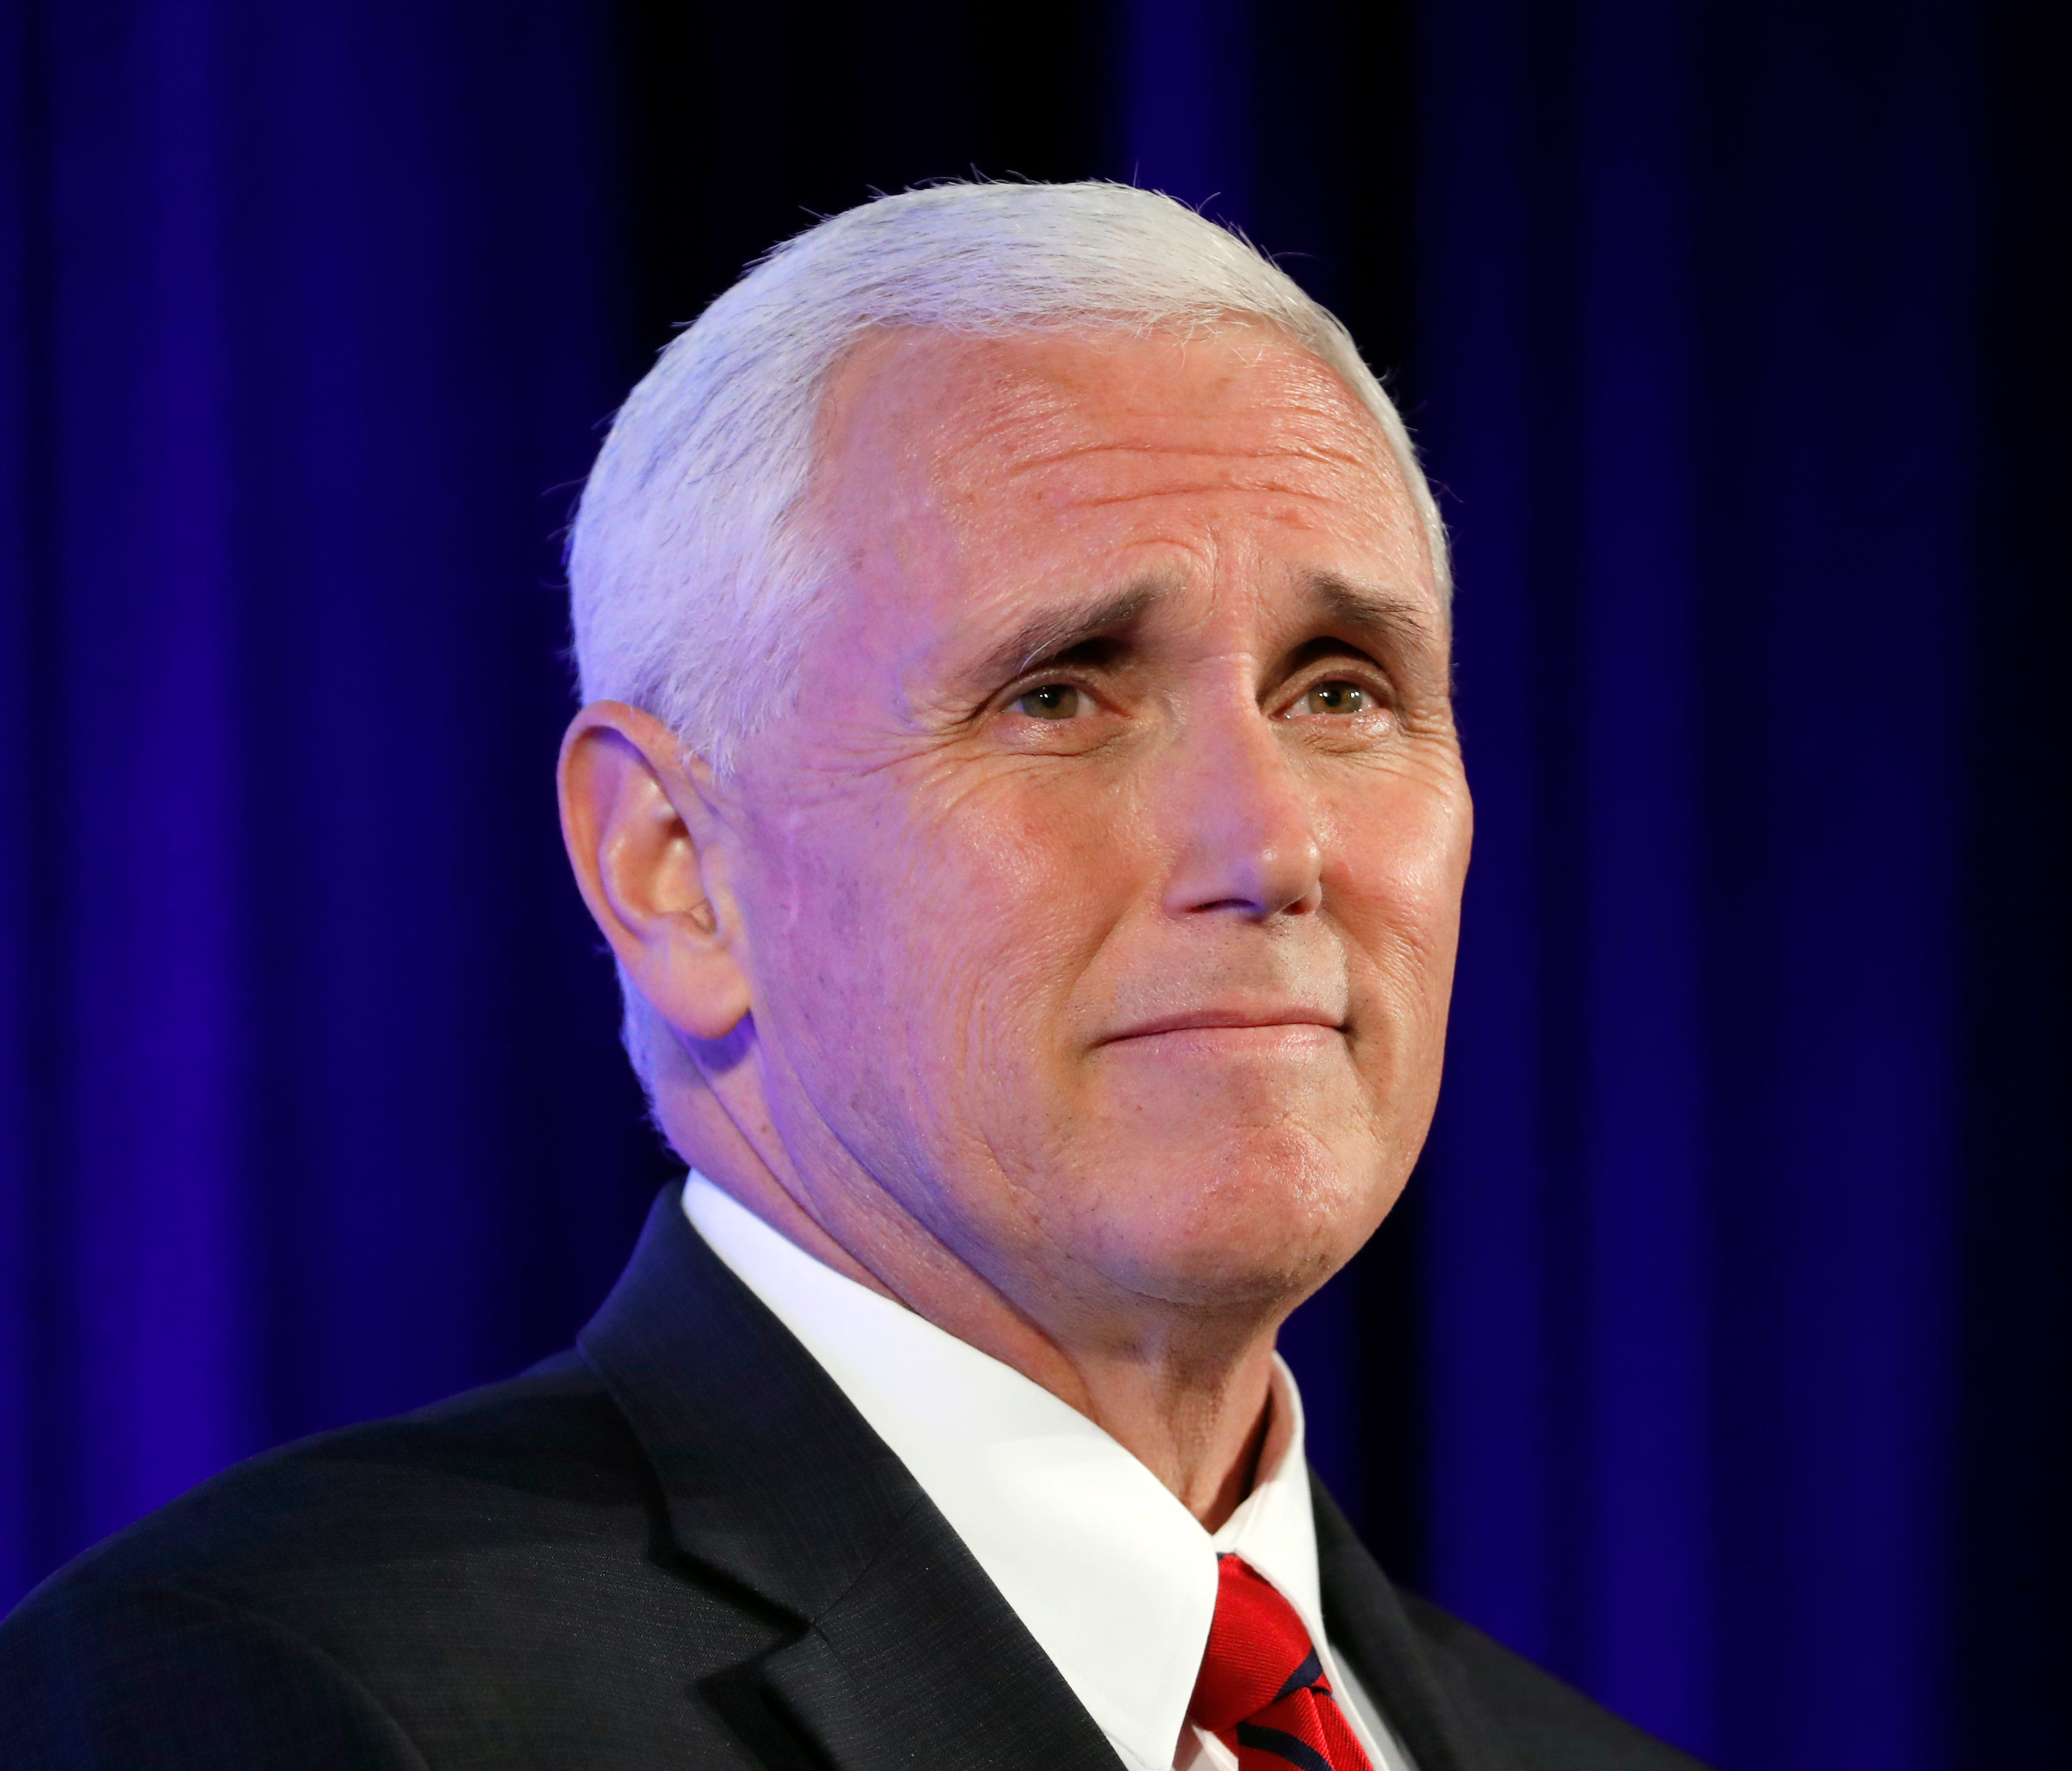 Vice President Mike Pence pauses while speaking at the U.S. Chamber of Commerce, during their